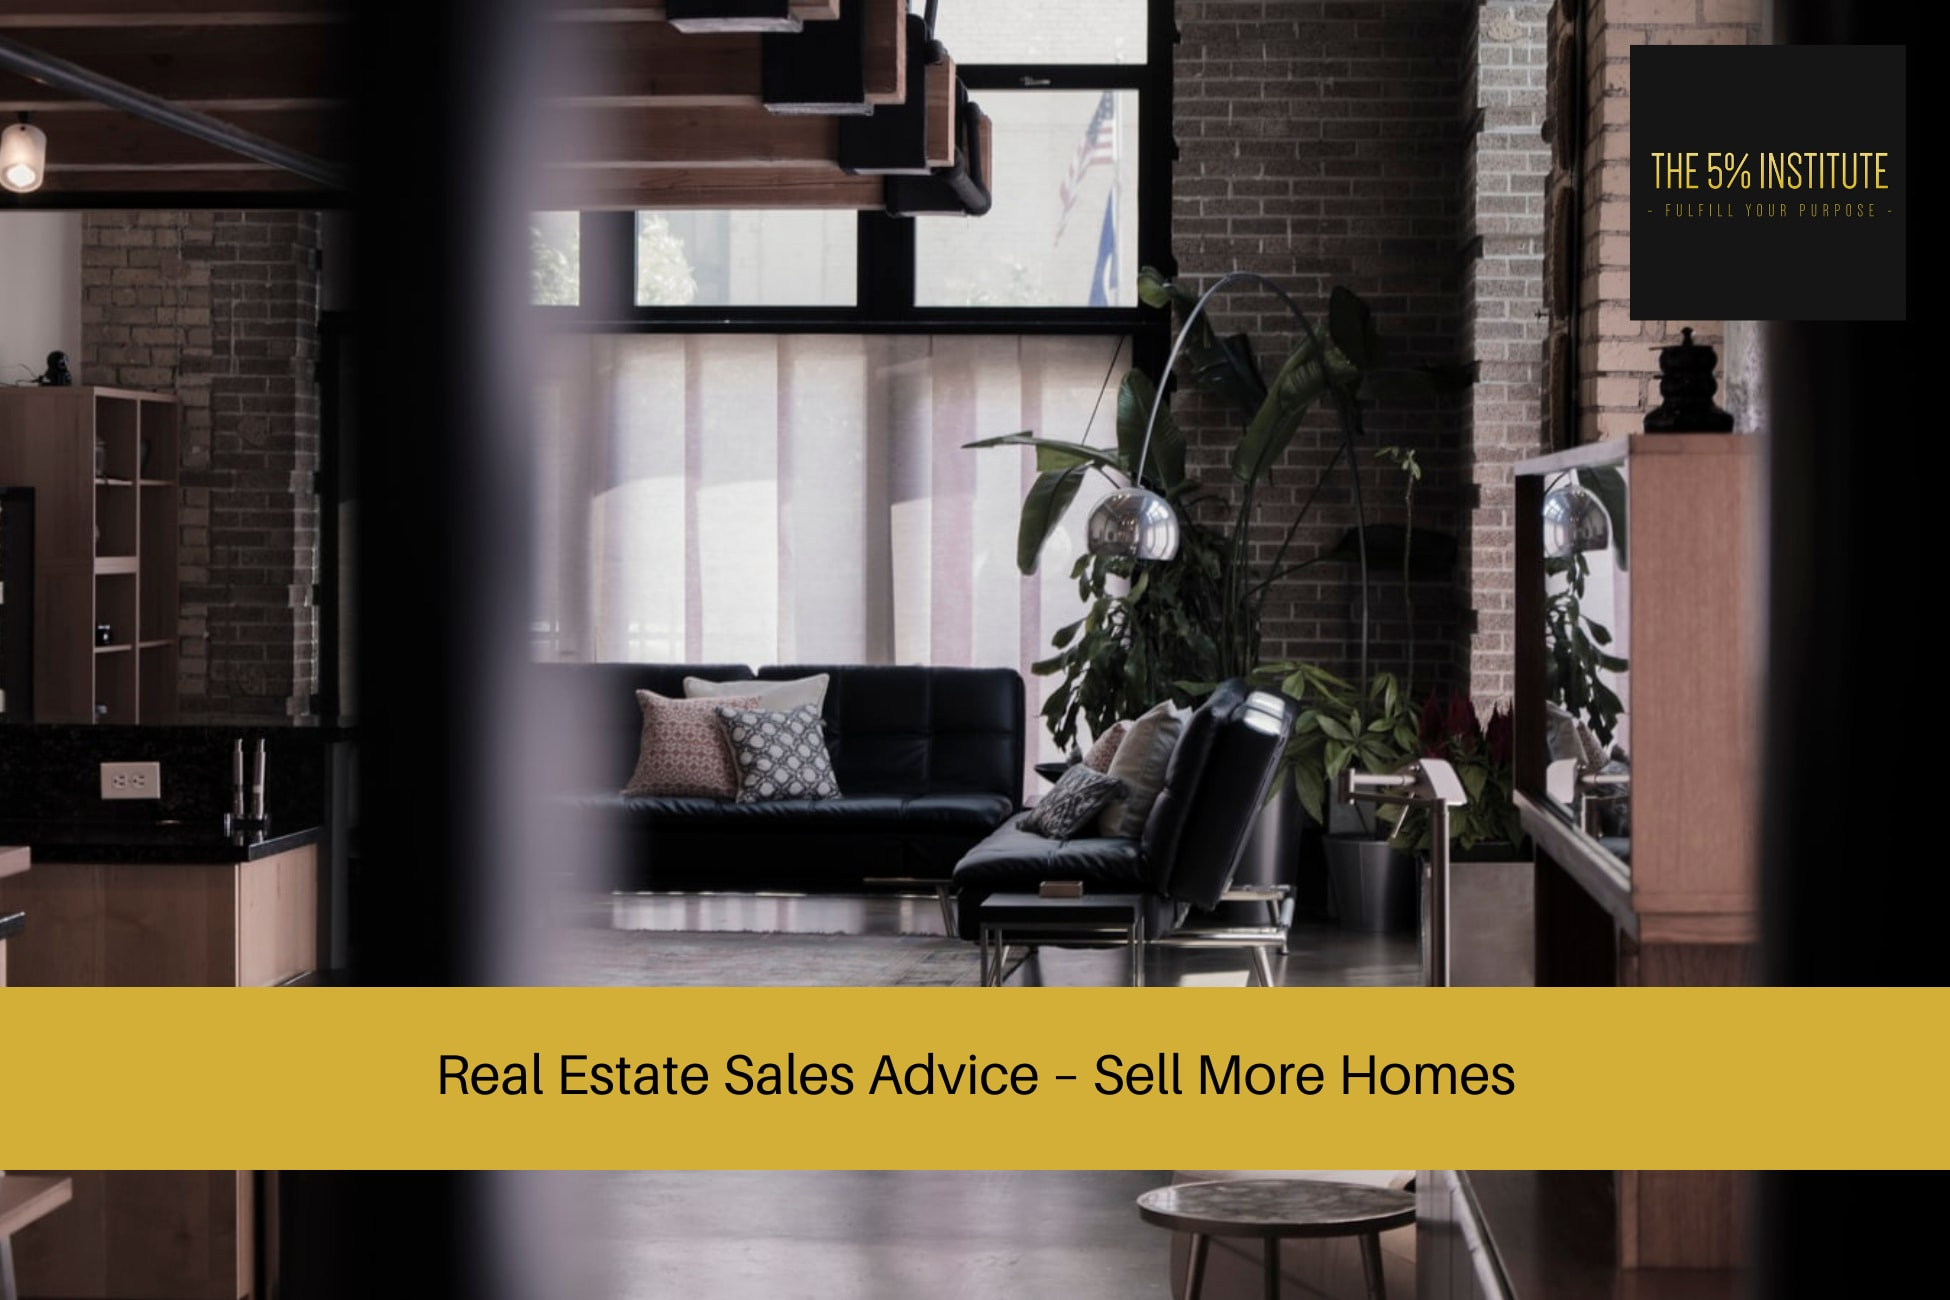 Real Estate Sales Advice